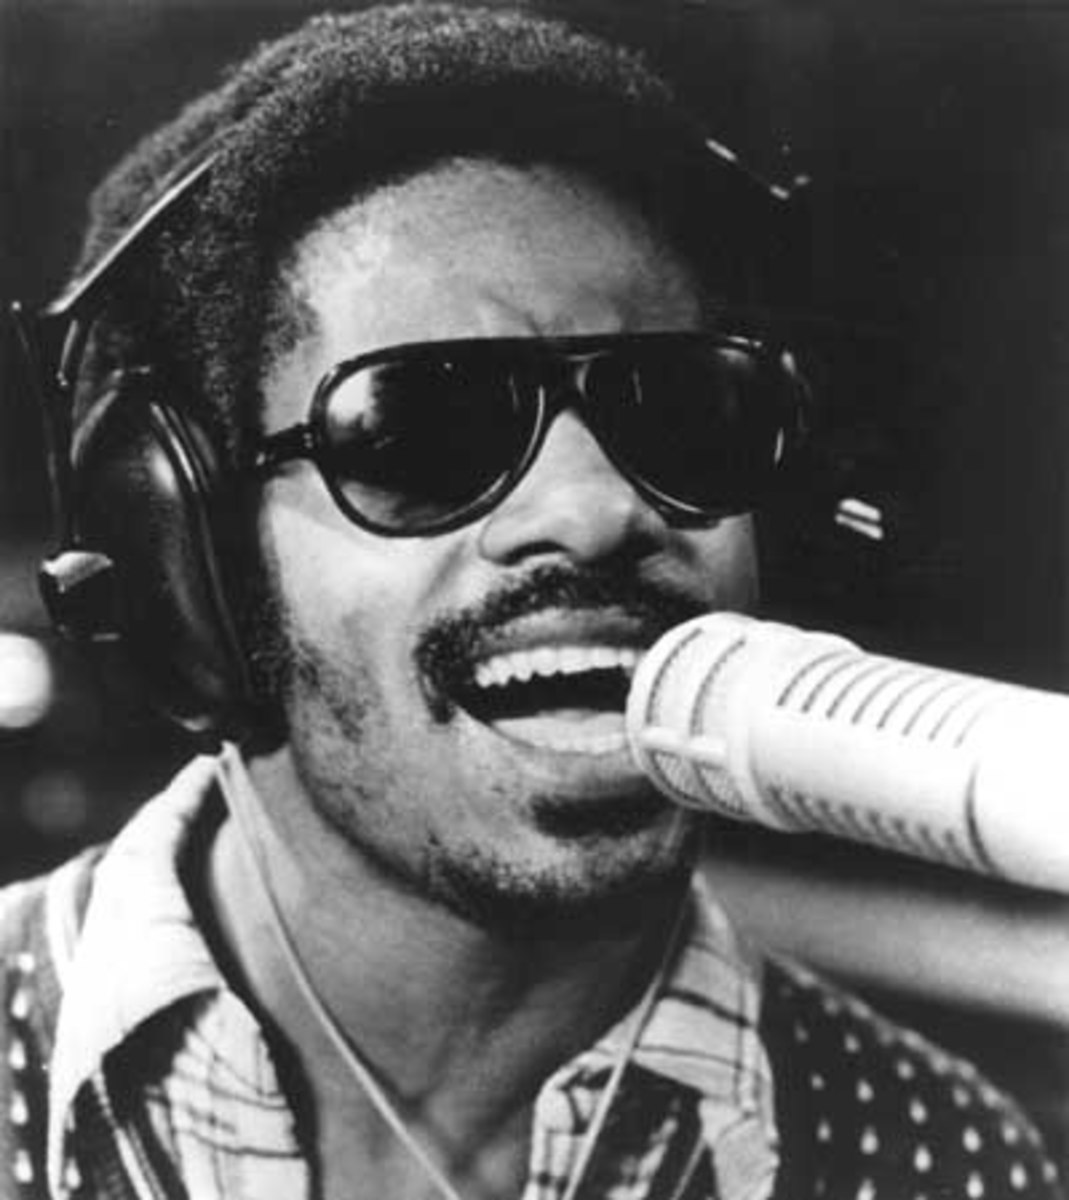 Stevie Wonder, an American singer-songwriter, multi-instrumentalist and record producer (1950)